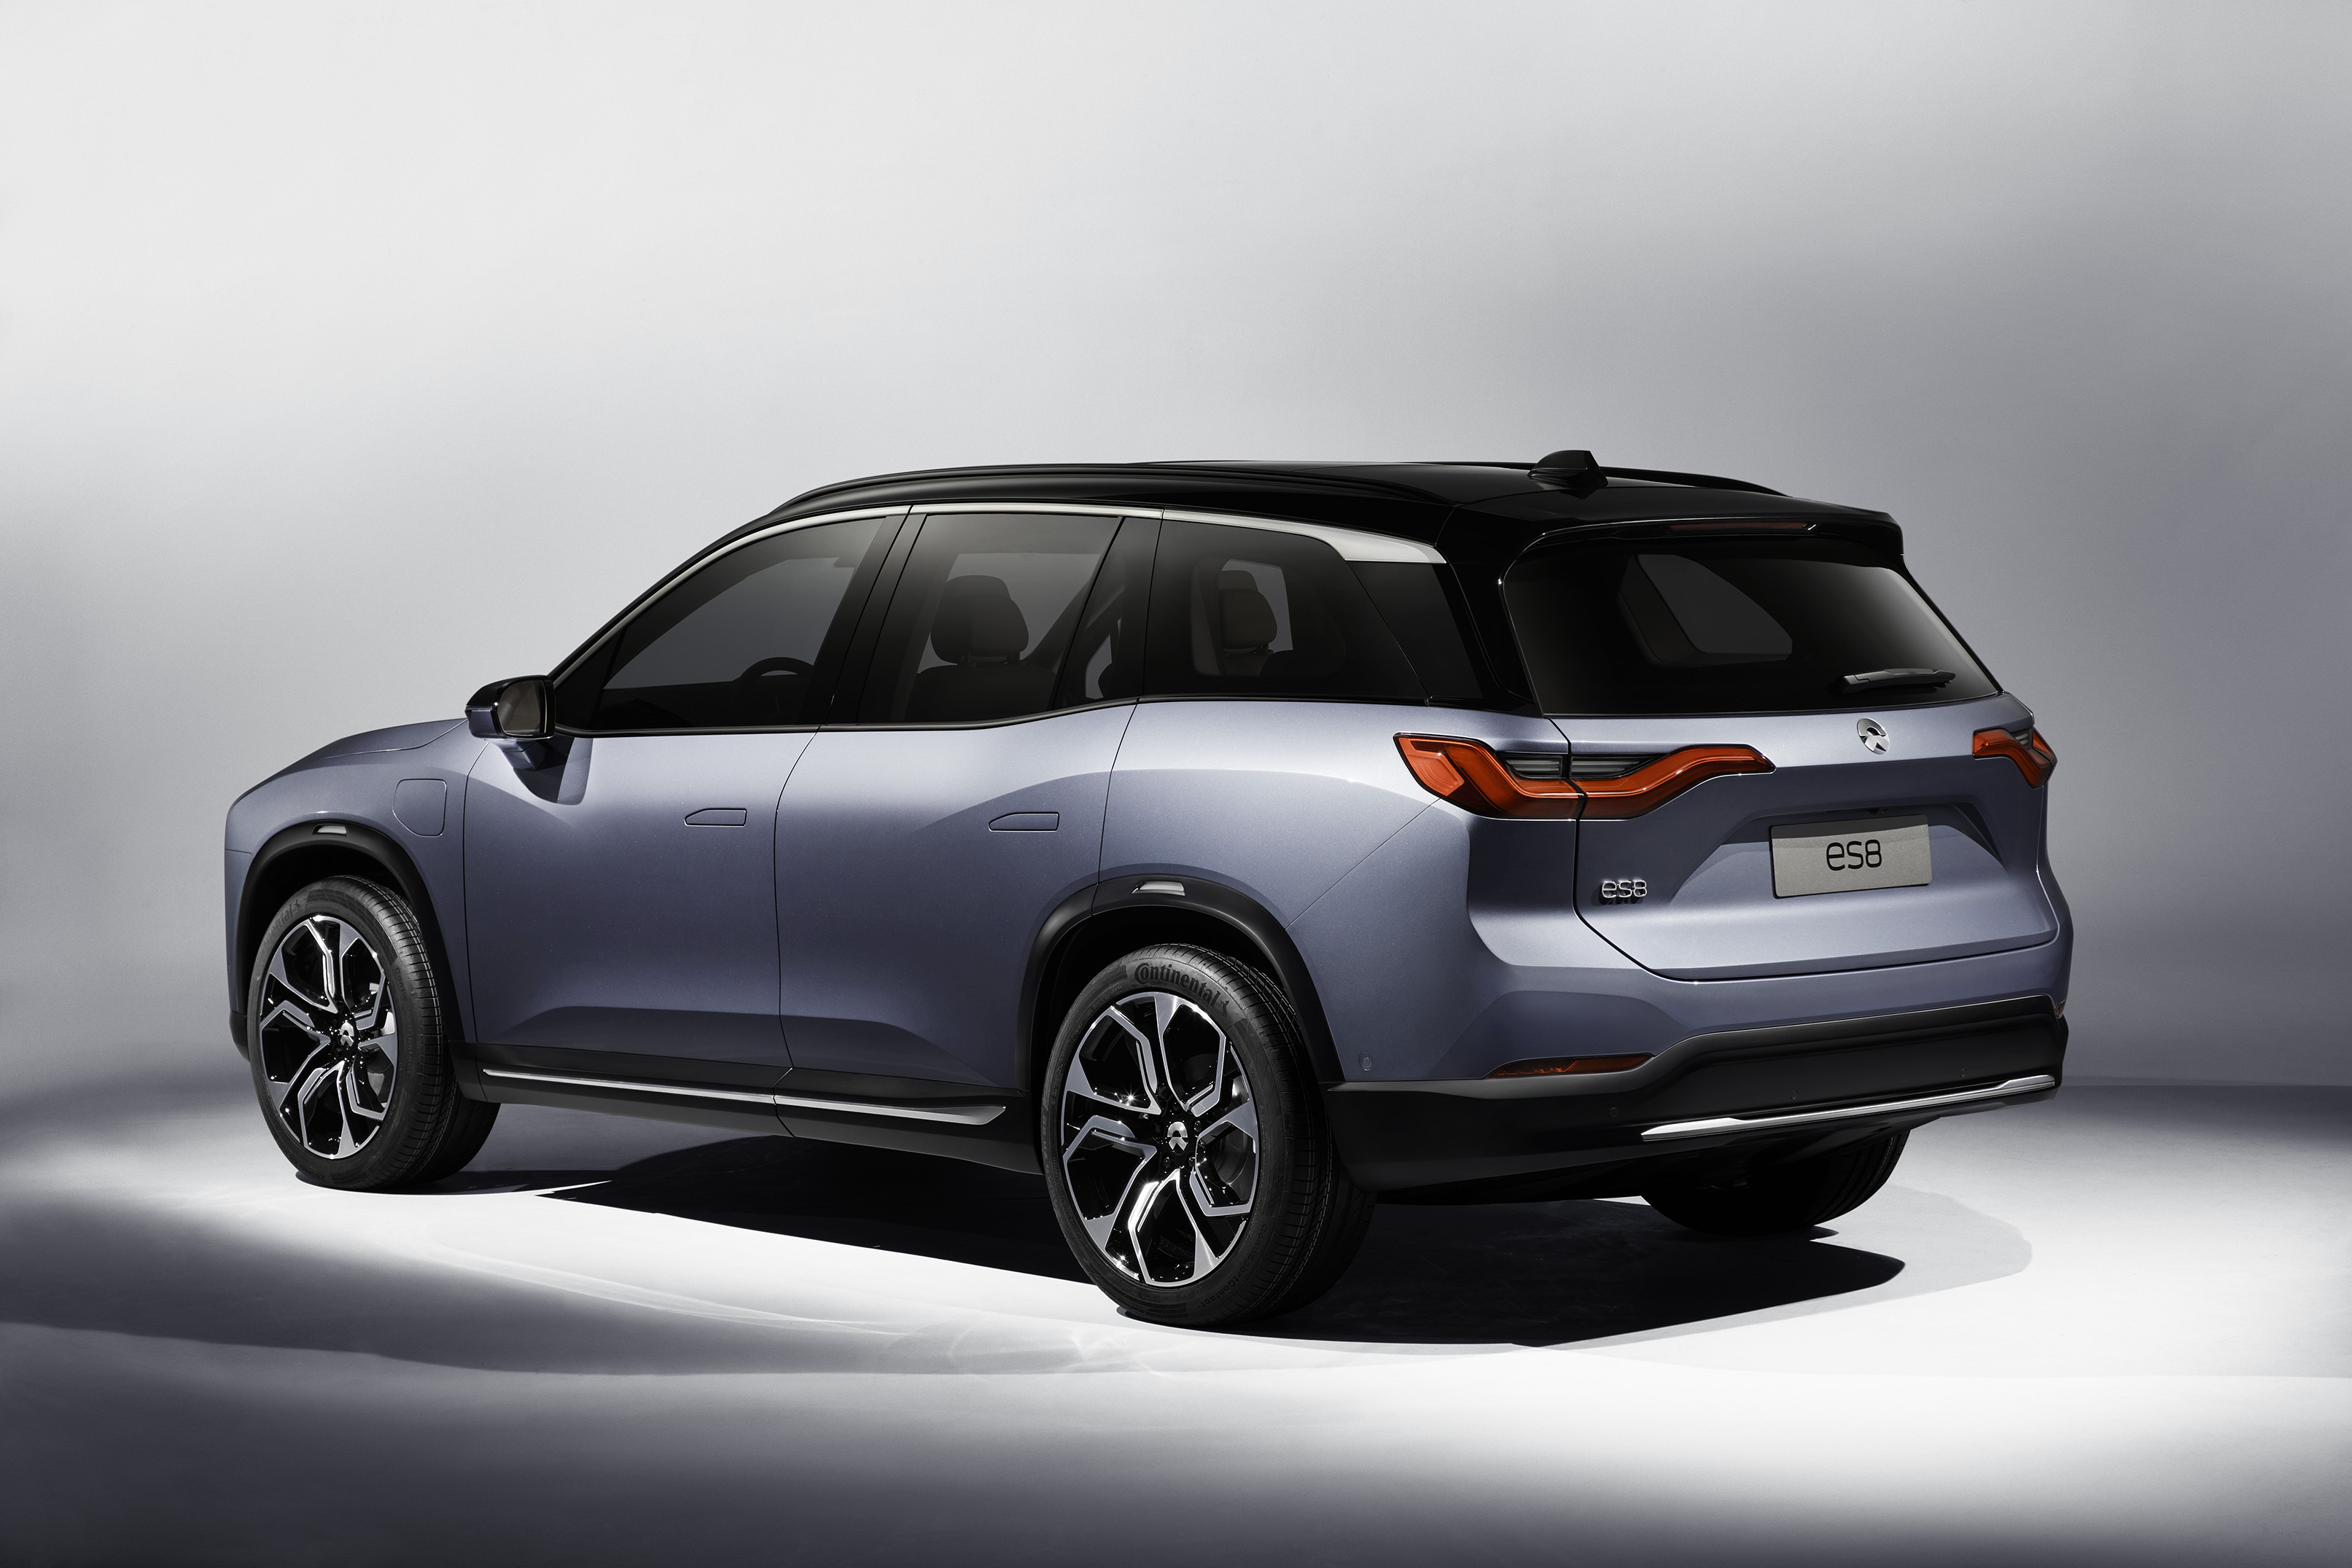 Nio Didn T Go Into The Details About Specifications Of Vehicles And Said That There Will Be Another Unveiling Later This Year But It Did Released A